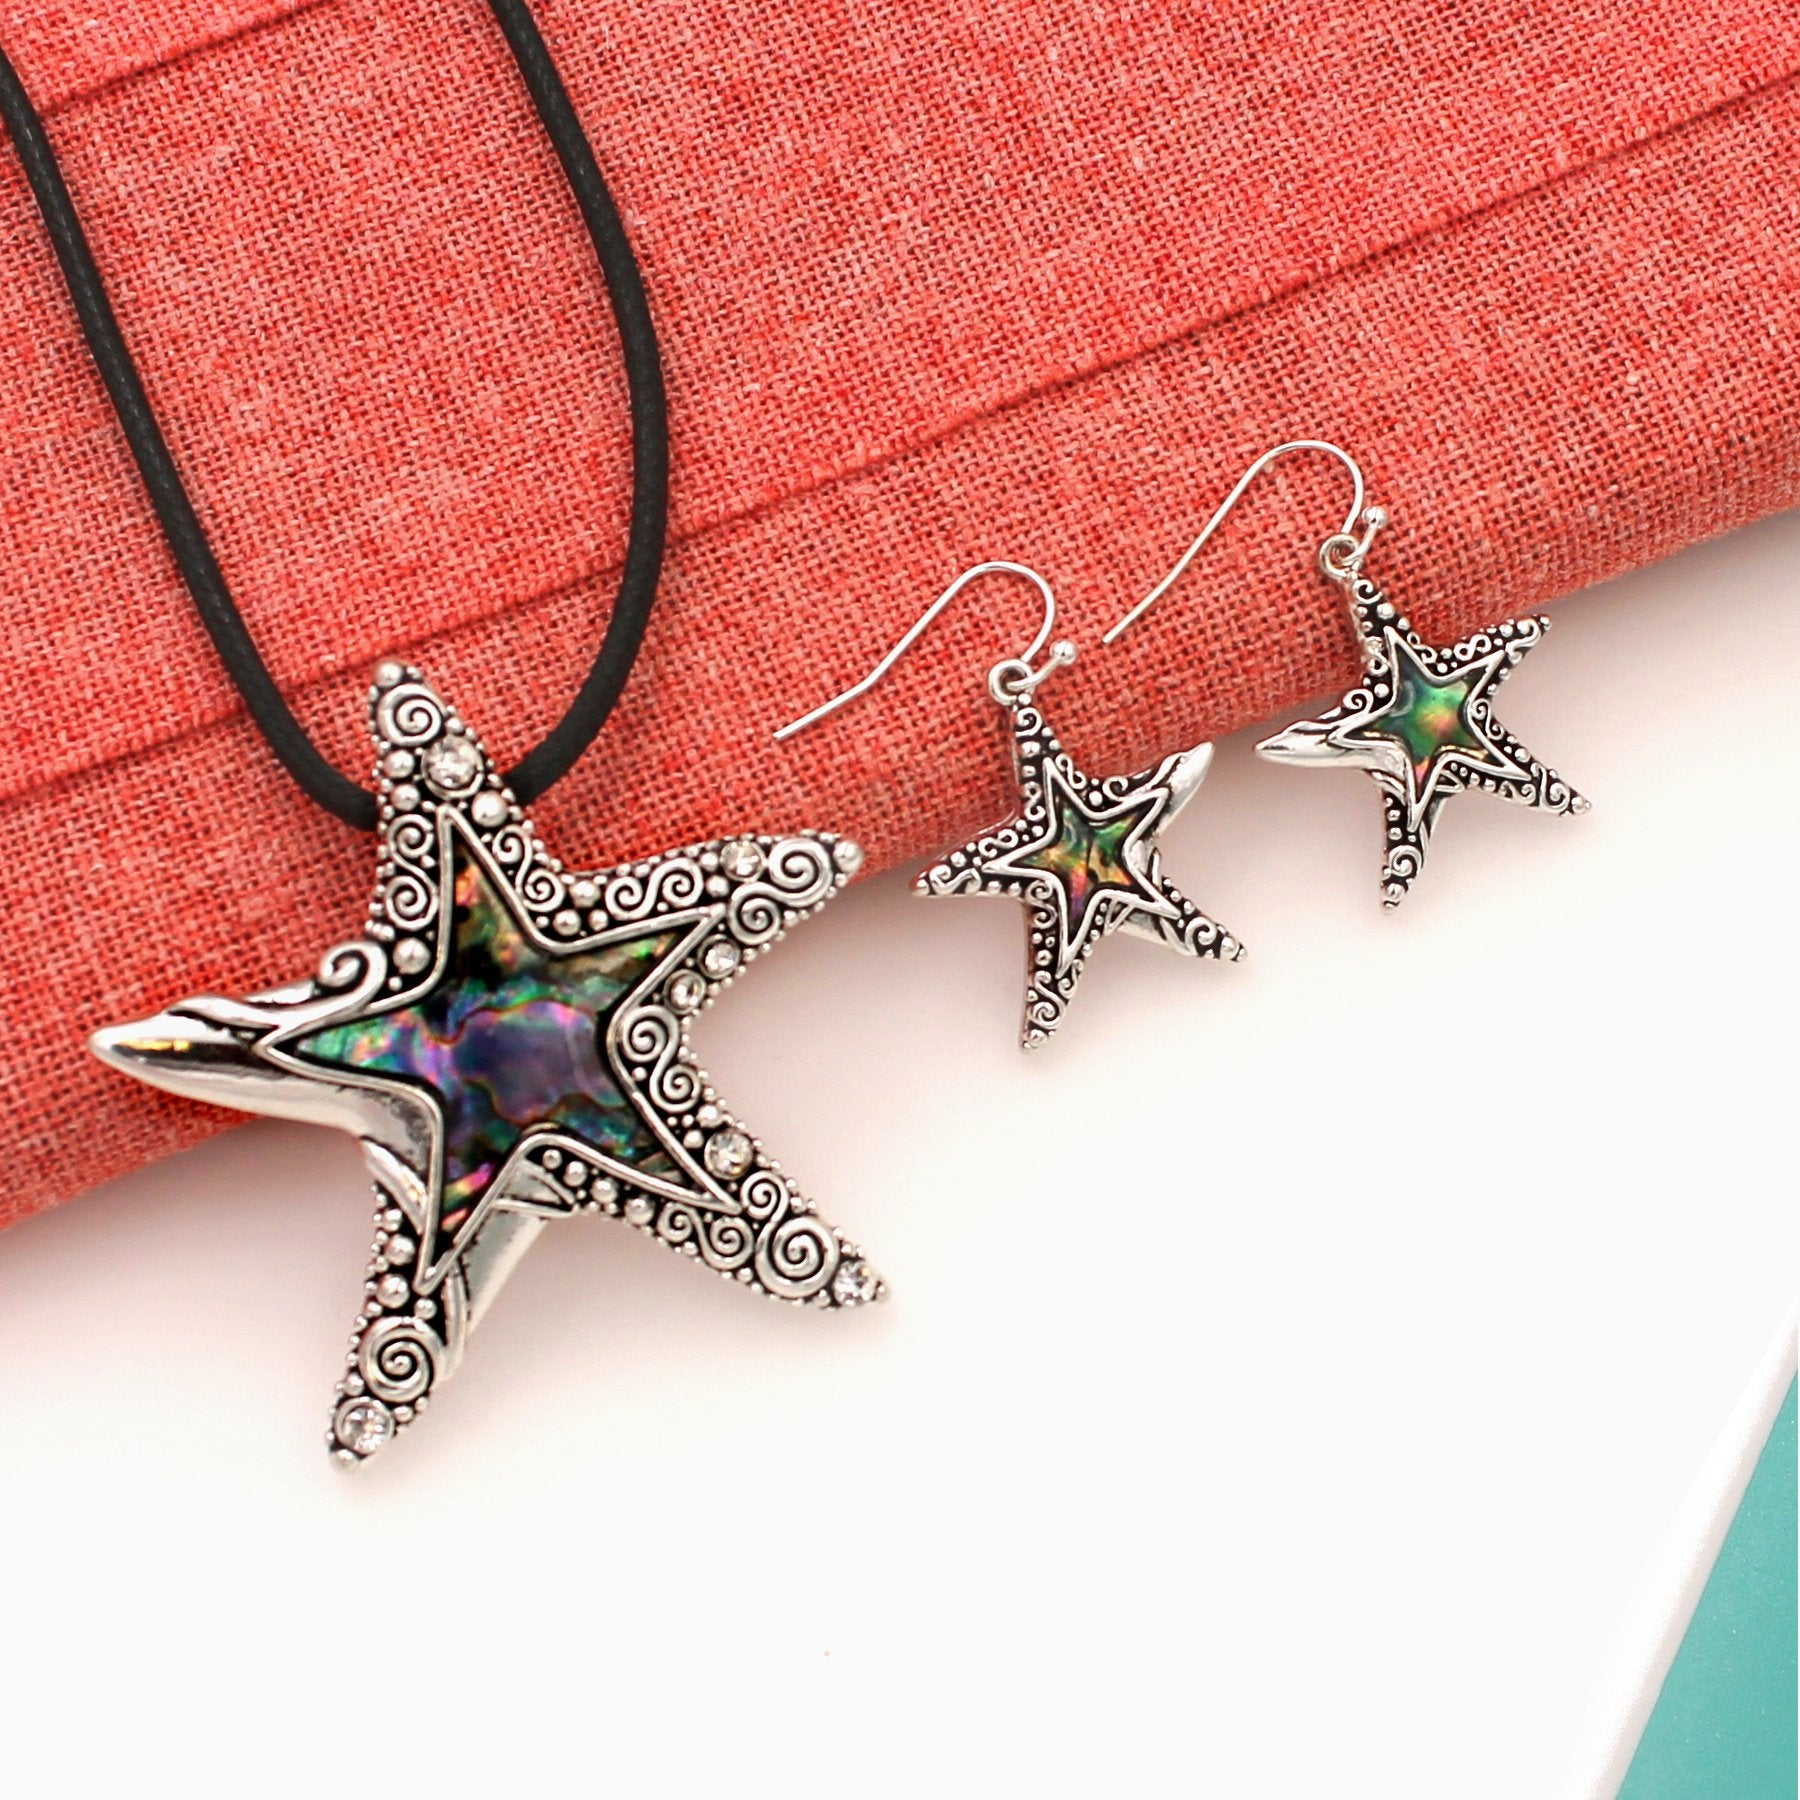 Silver Abalone Ornate Filigree Starfish Pendant and Earrings Jewelry Set